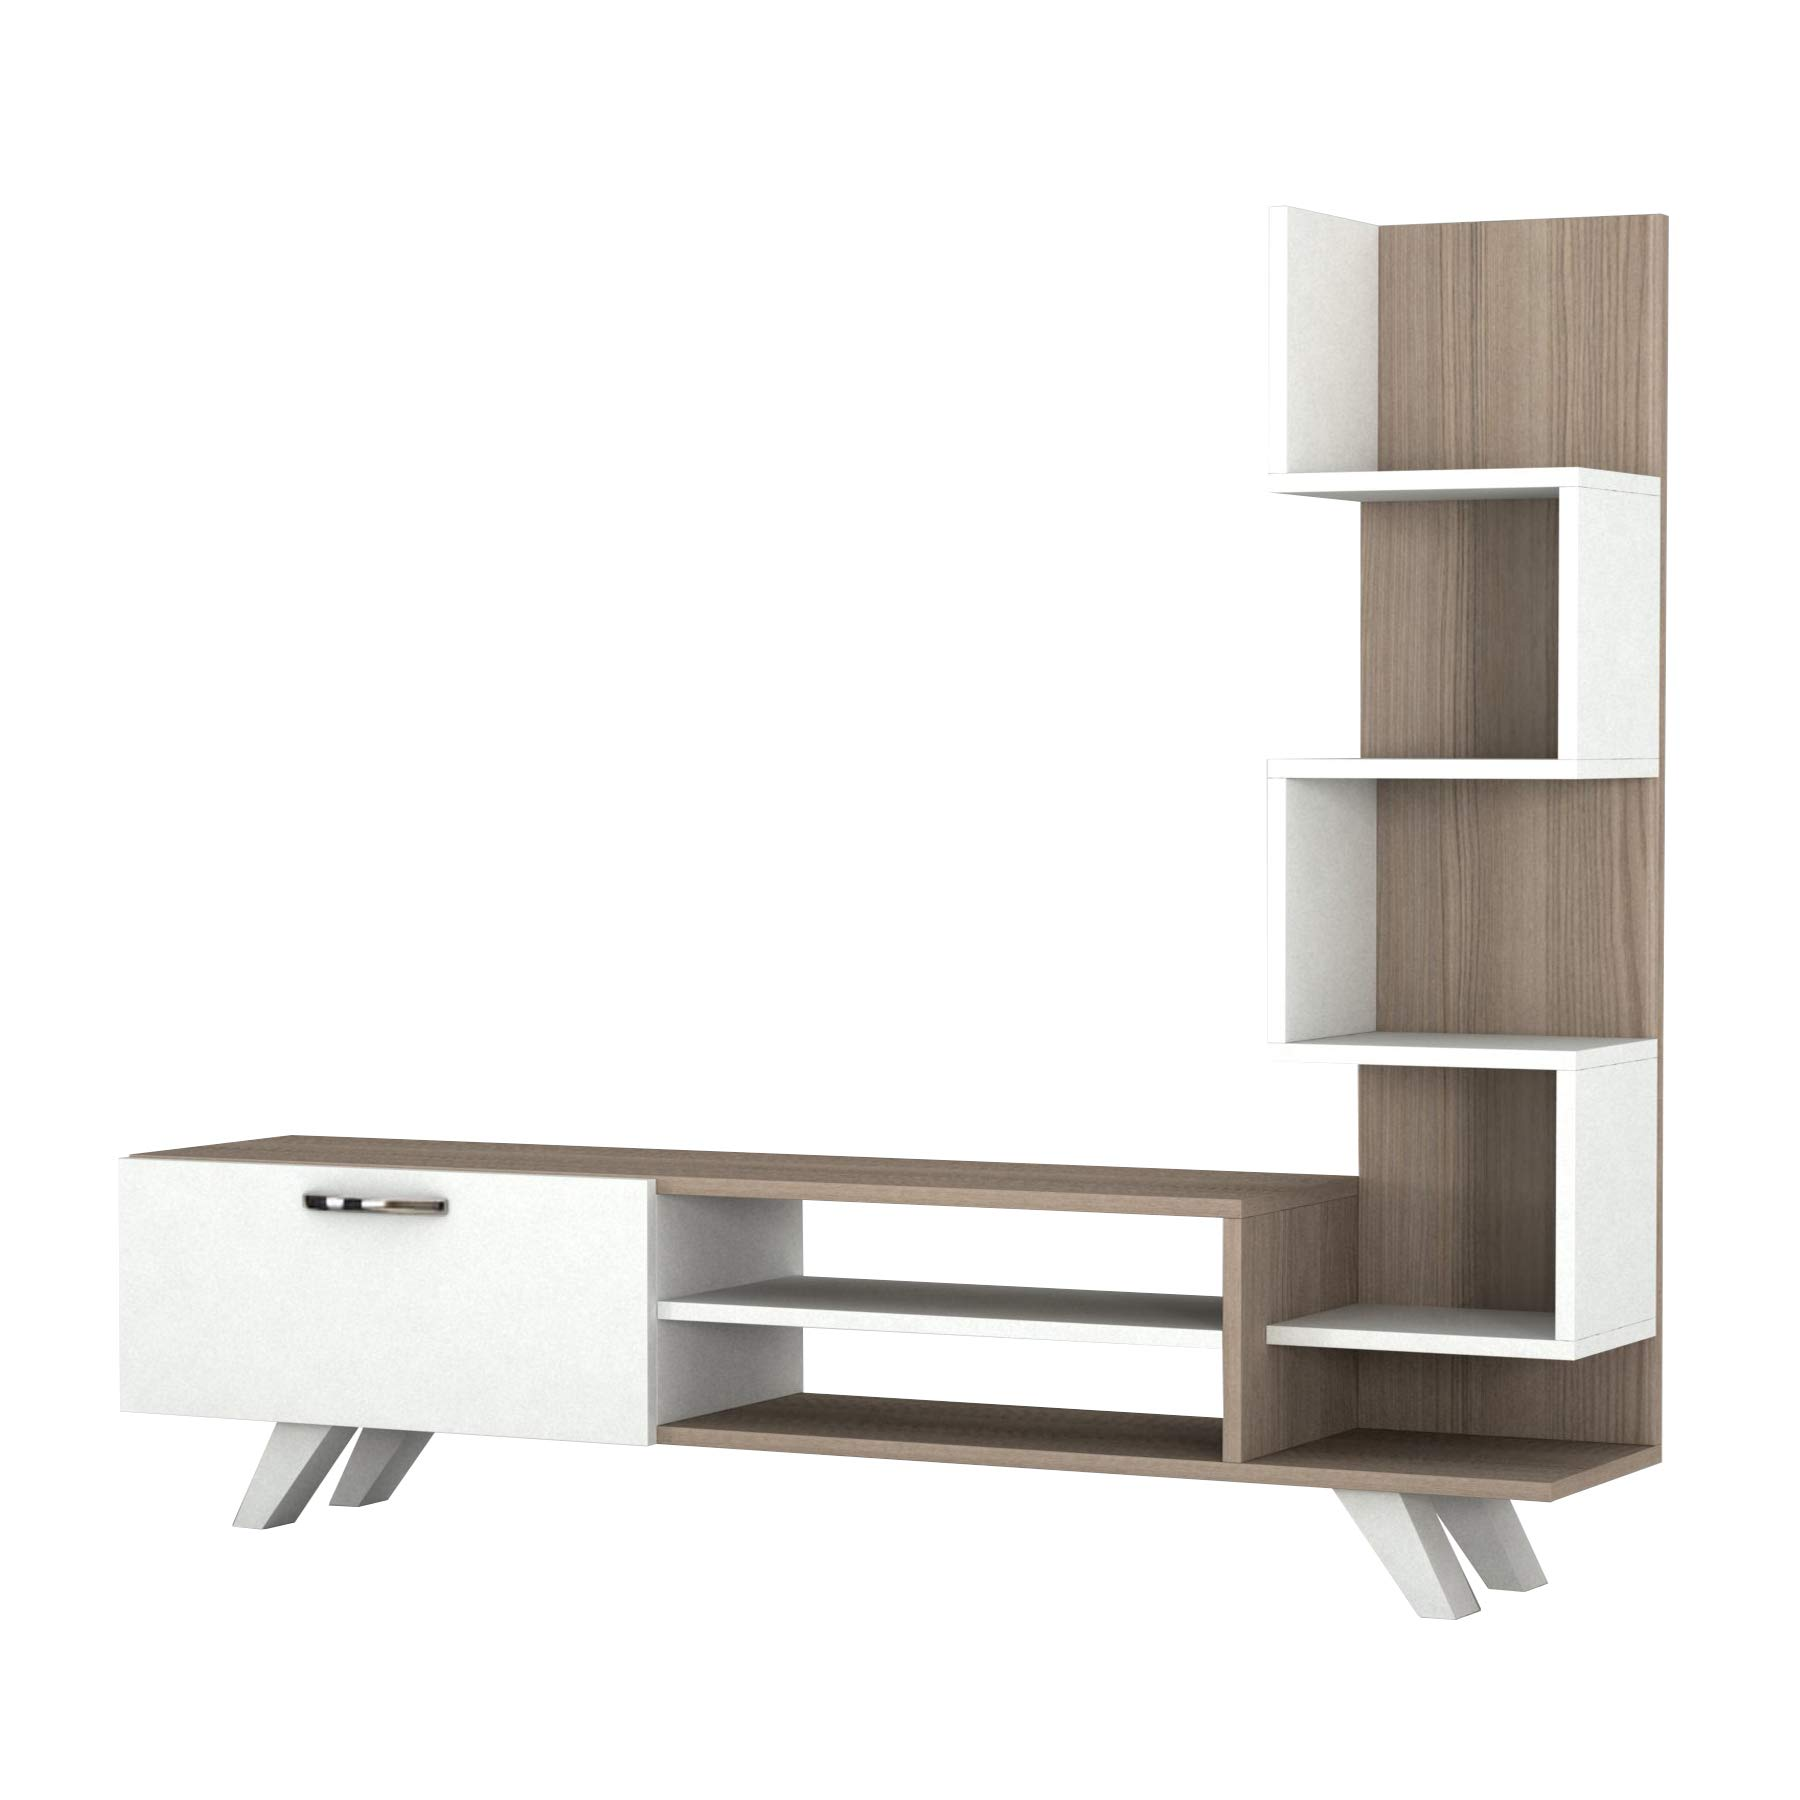 Gazelle TV Stand with Bookcase for TVs up to 54''